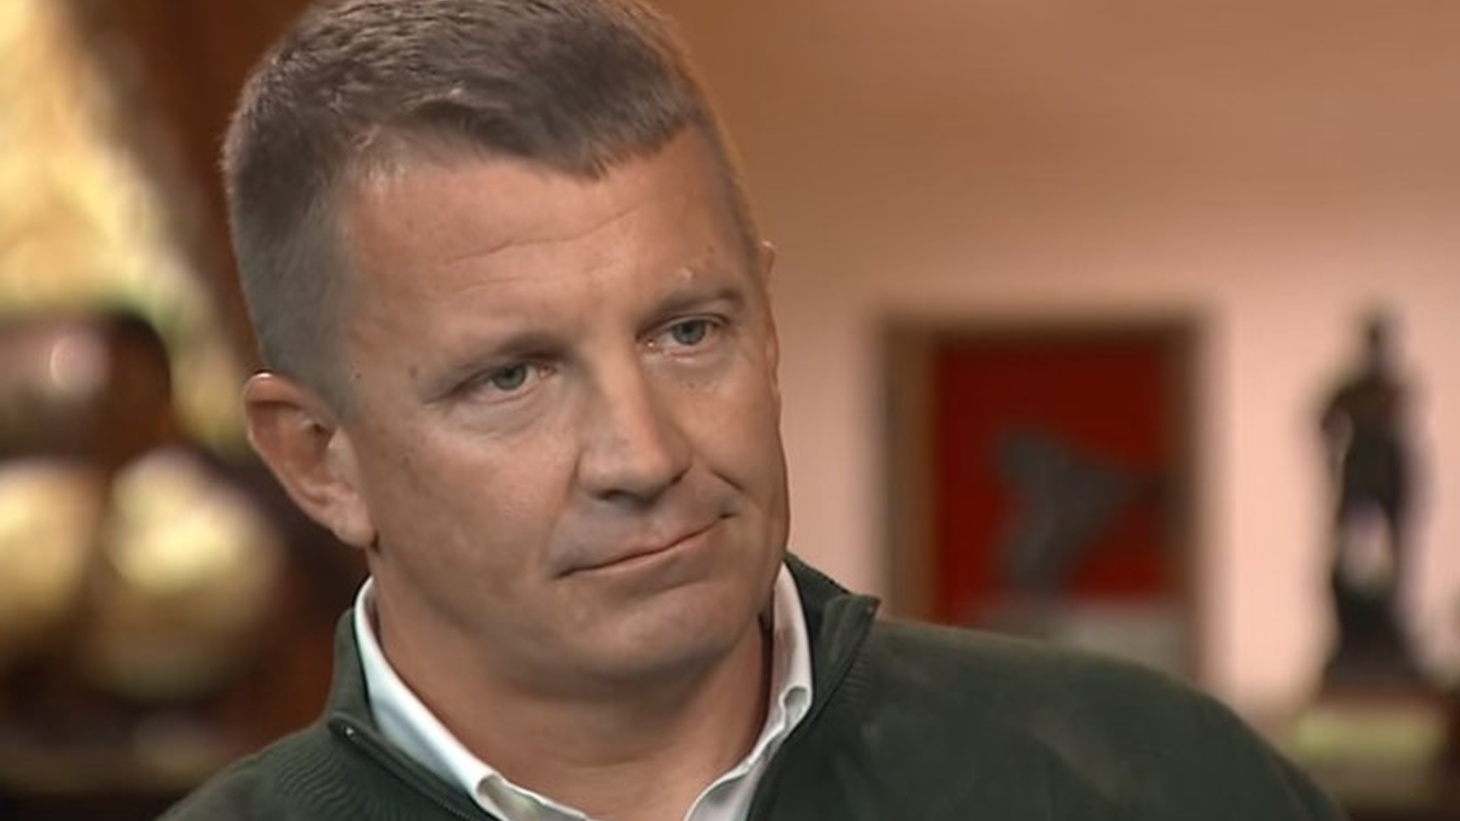 Erik Prince was the founder of Blackwater, a security firm that became a symbol of US abuses in Iraq; several Blackwater guards were convicted of killing civilians. Prince is also the brother of Betsy DeVos, President Trump's Secretary of Education.